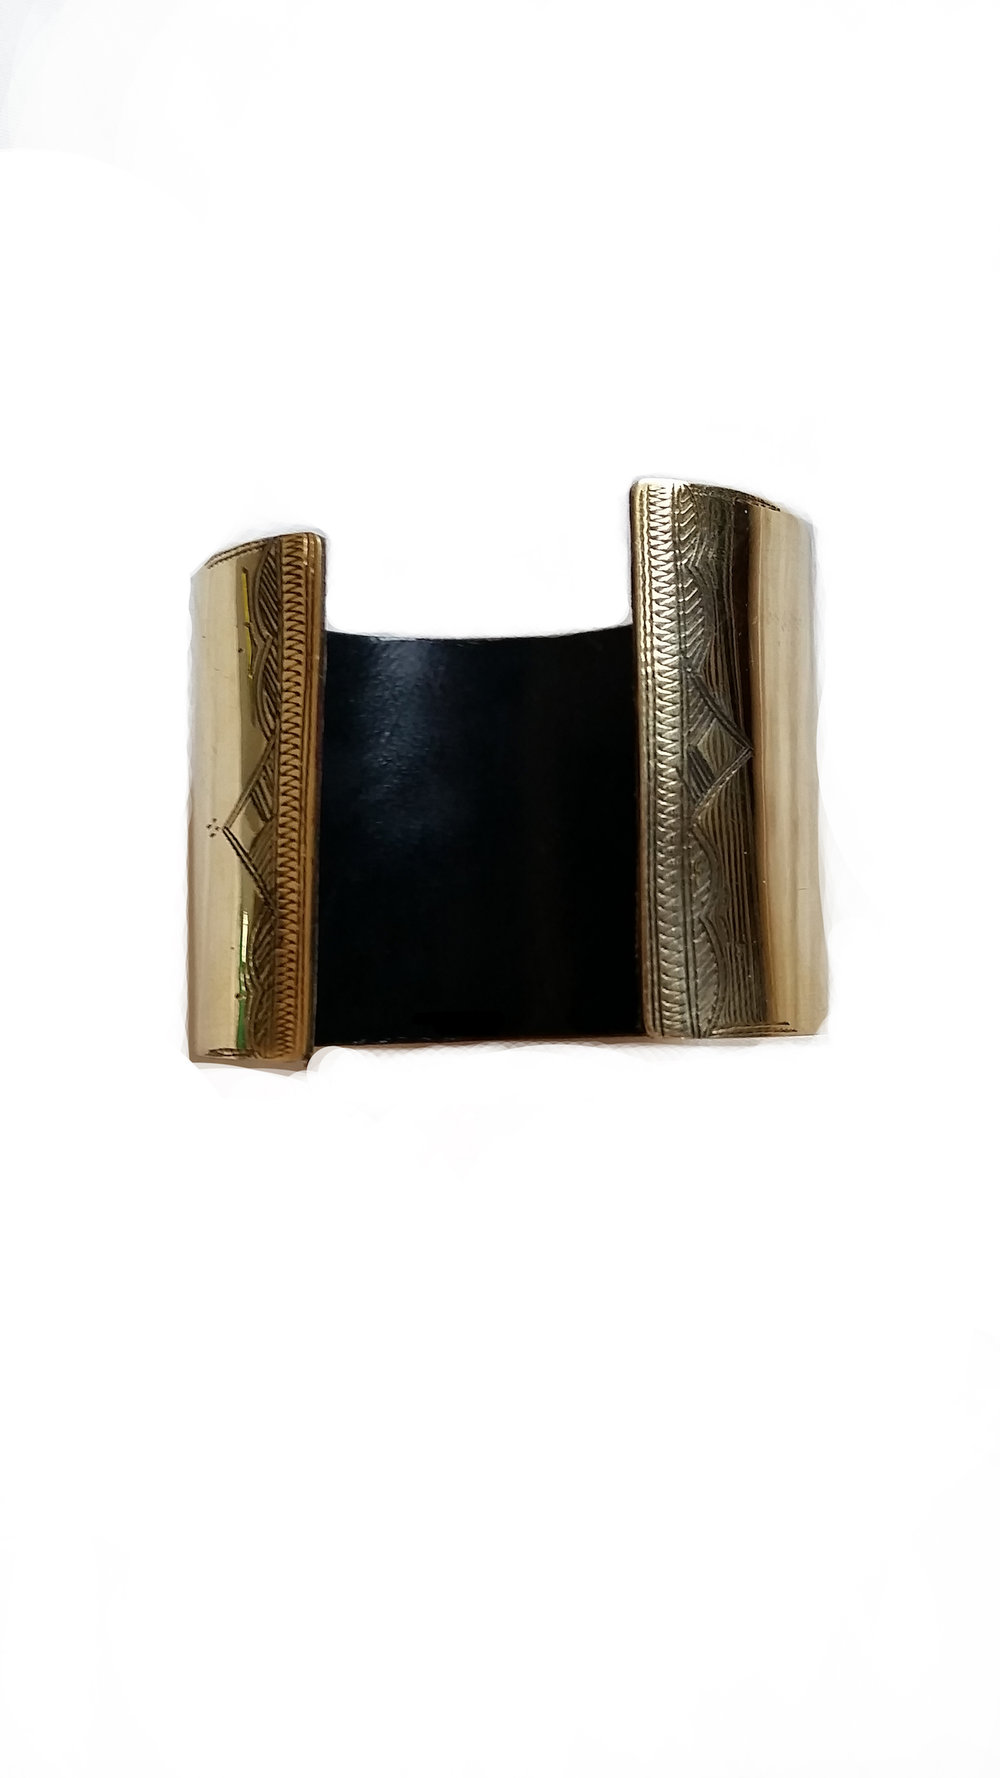 POLISHED BRONZE & LEATHER CUFF Polished bronze, etched cuff fitted with handmade leather.